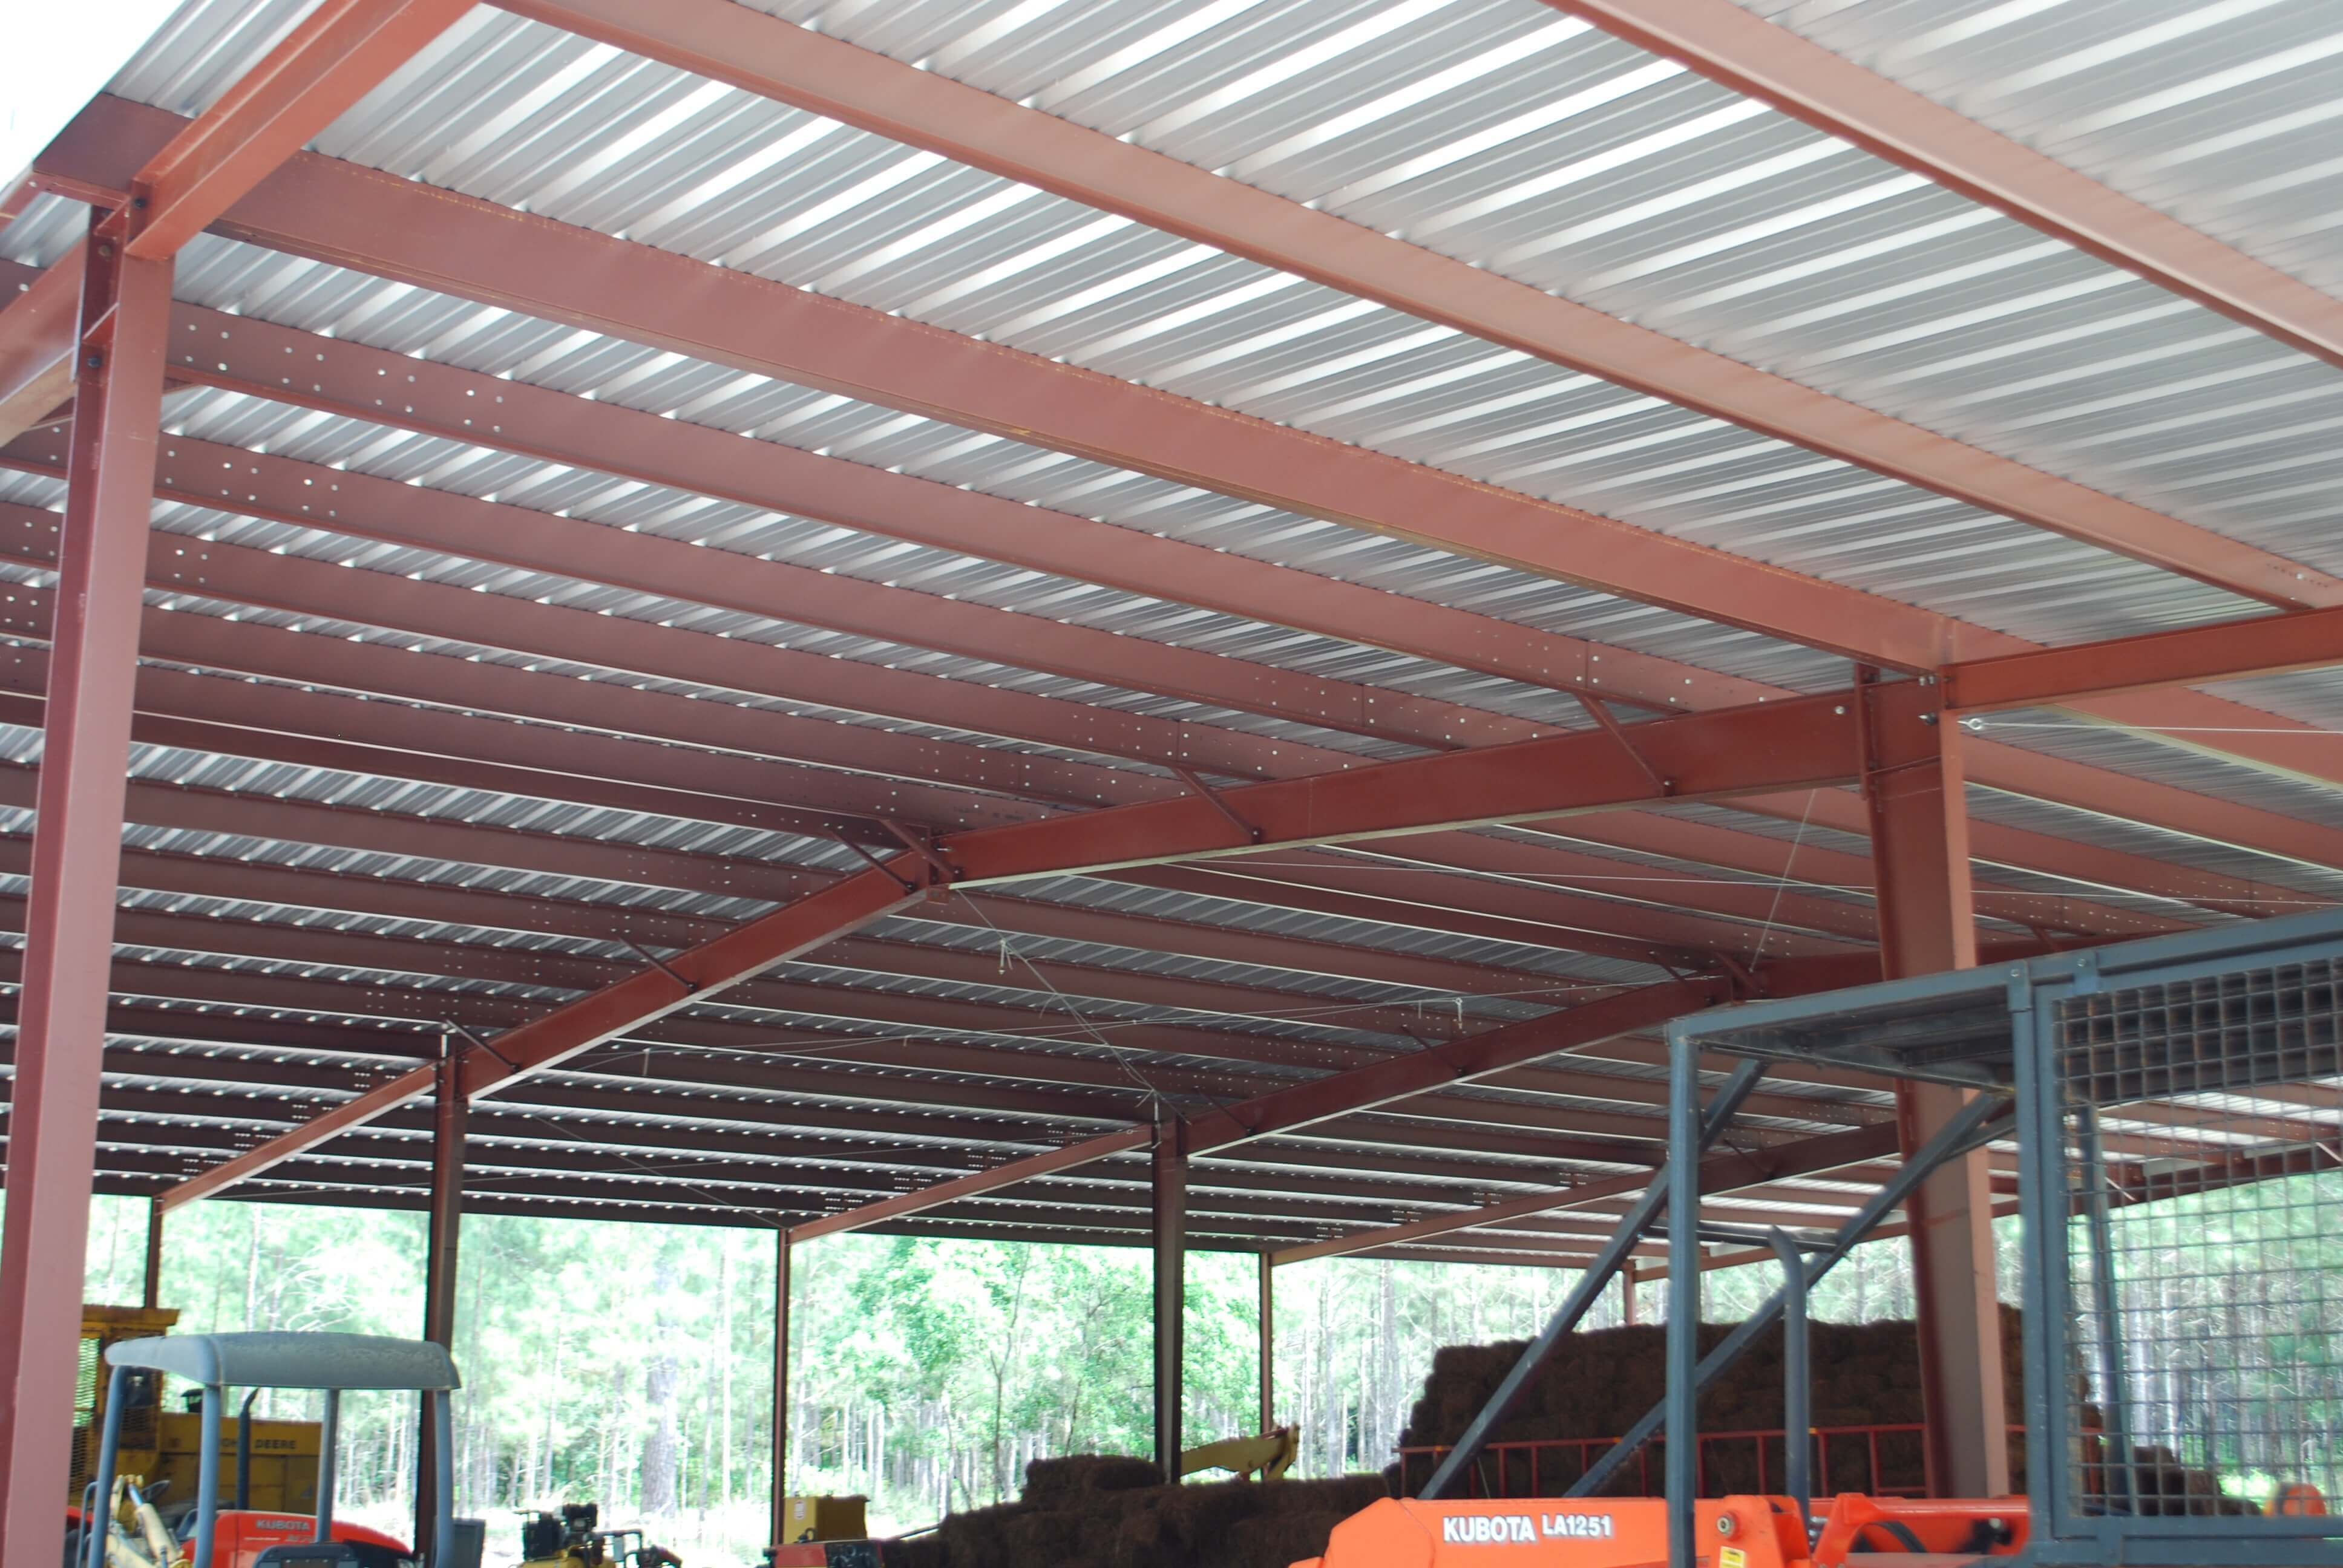 Construction Of Steel Buildings: Metal Agricultural & Commercial Buildings, Sheds, And Shelters